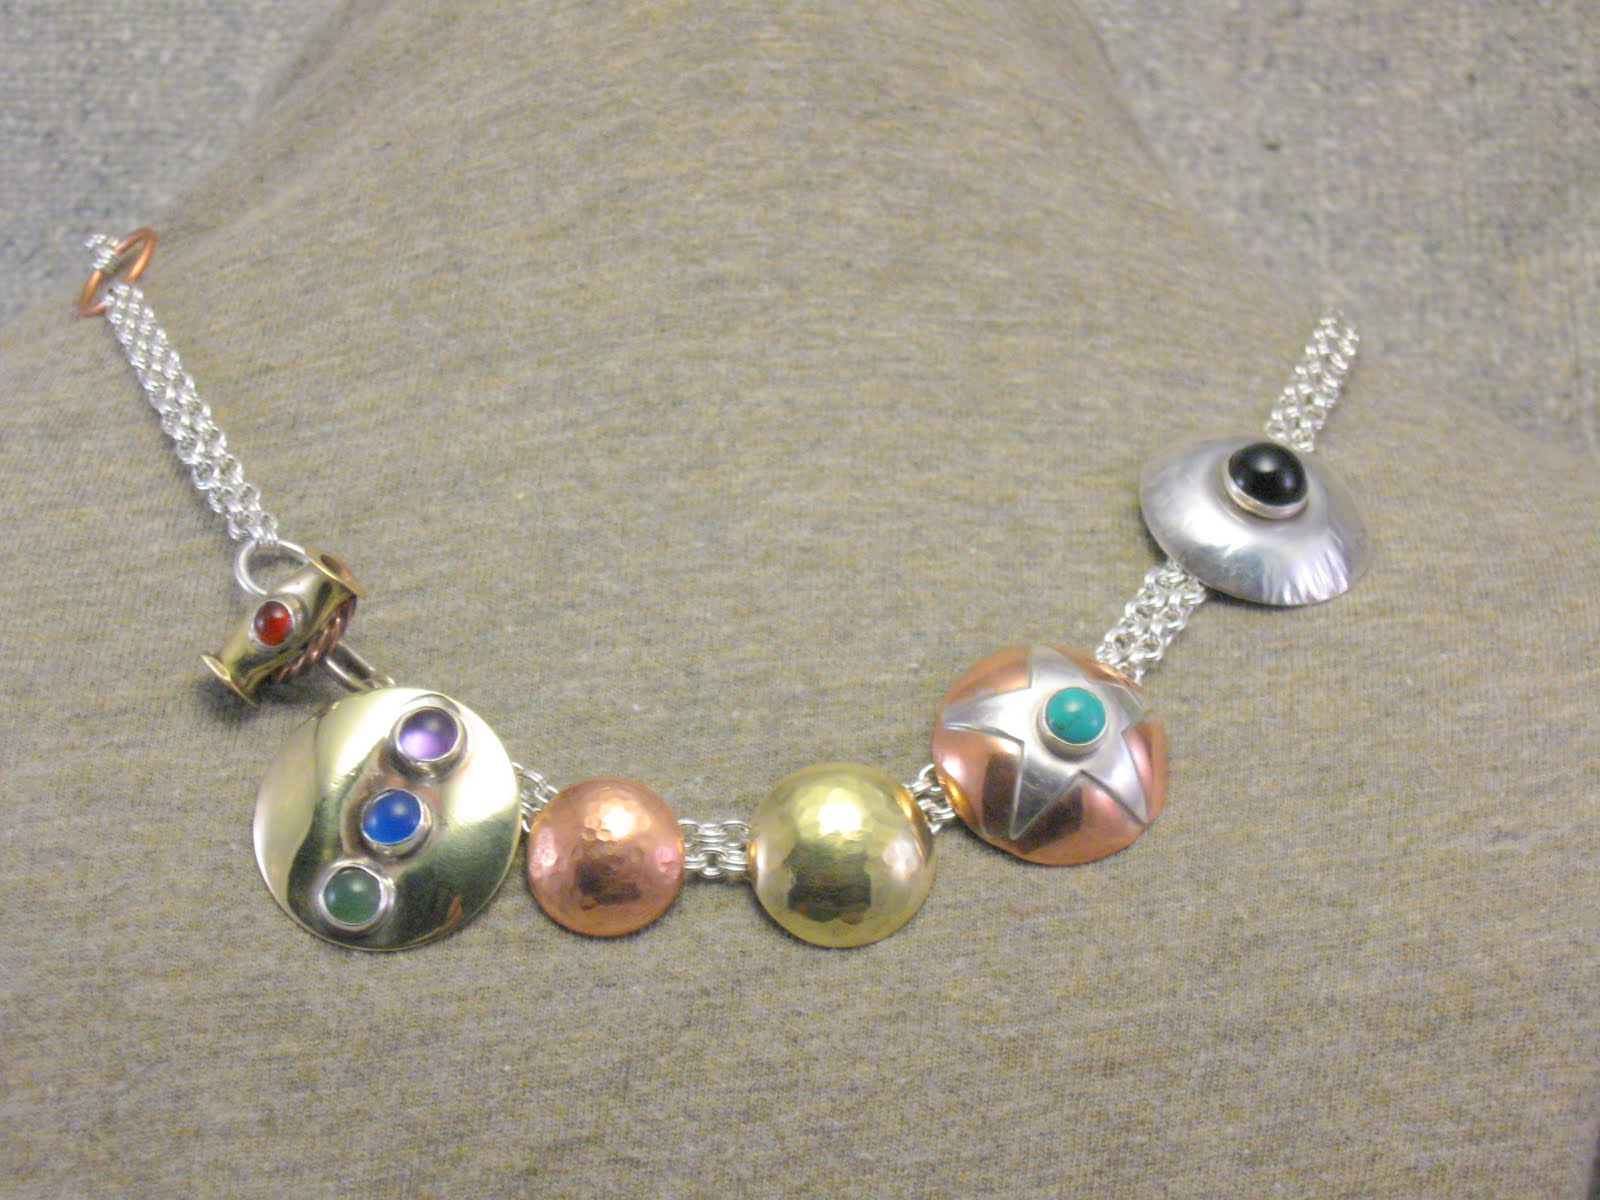 Toggled Dome Necklace. Slightly closer with domes moved a bit.JPG